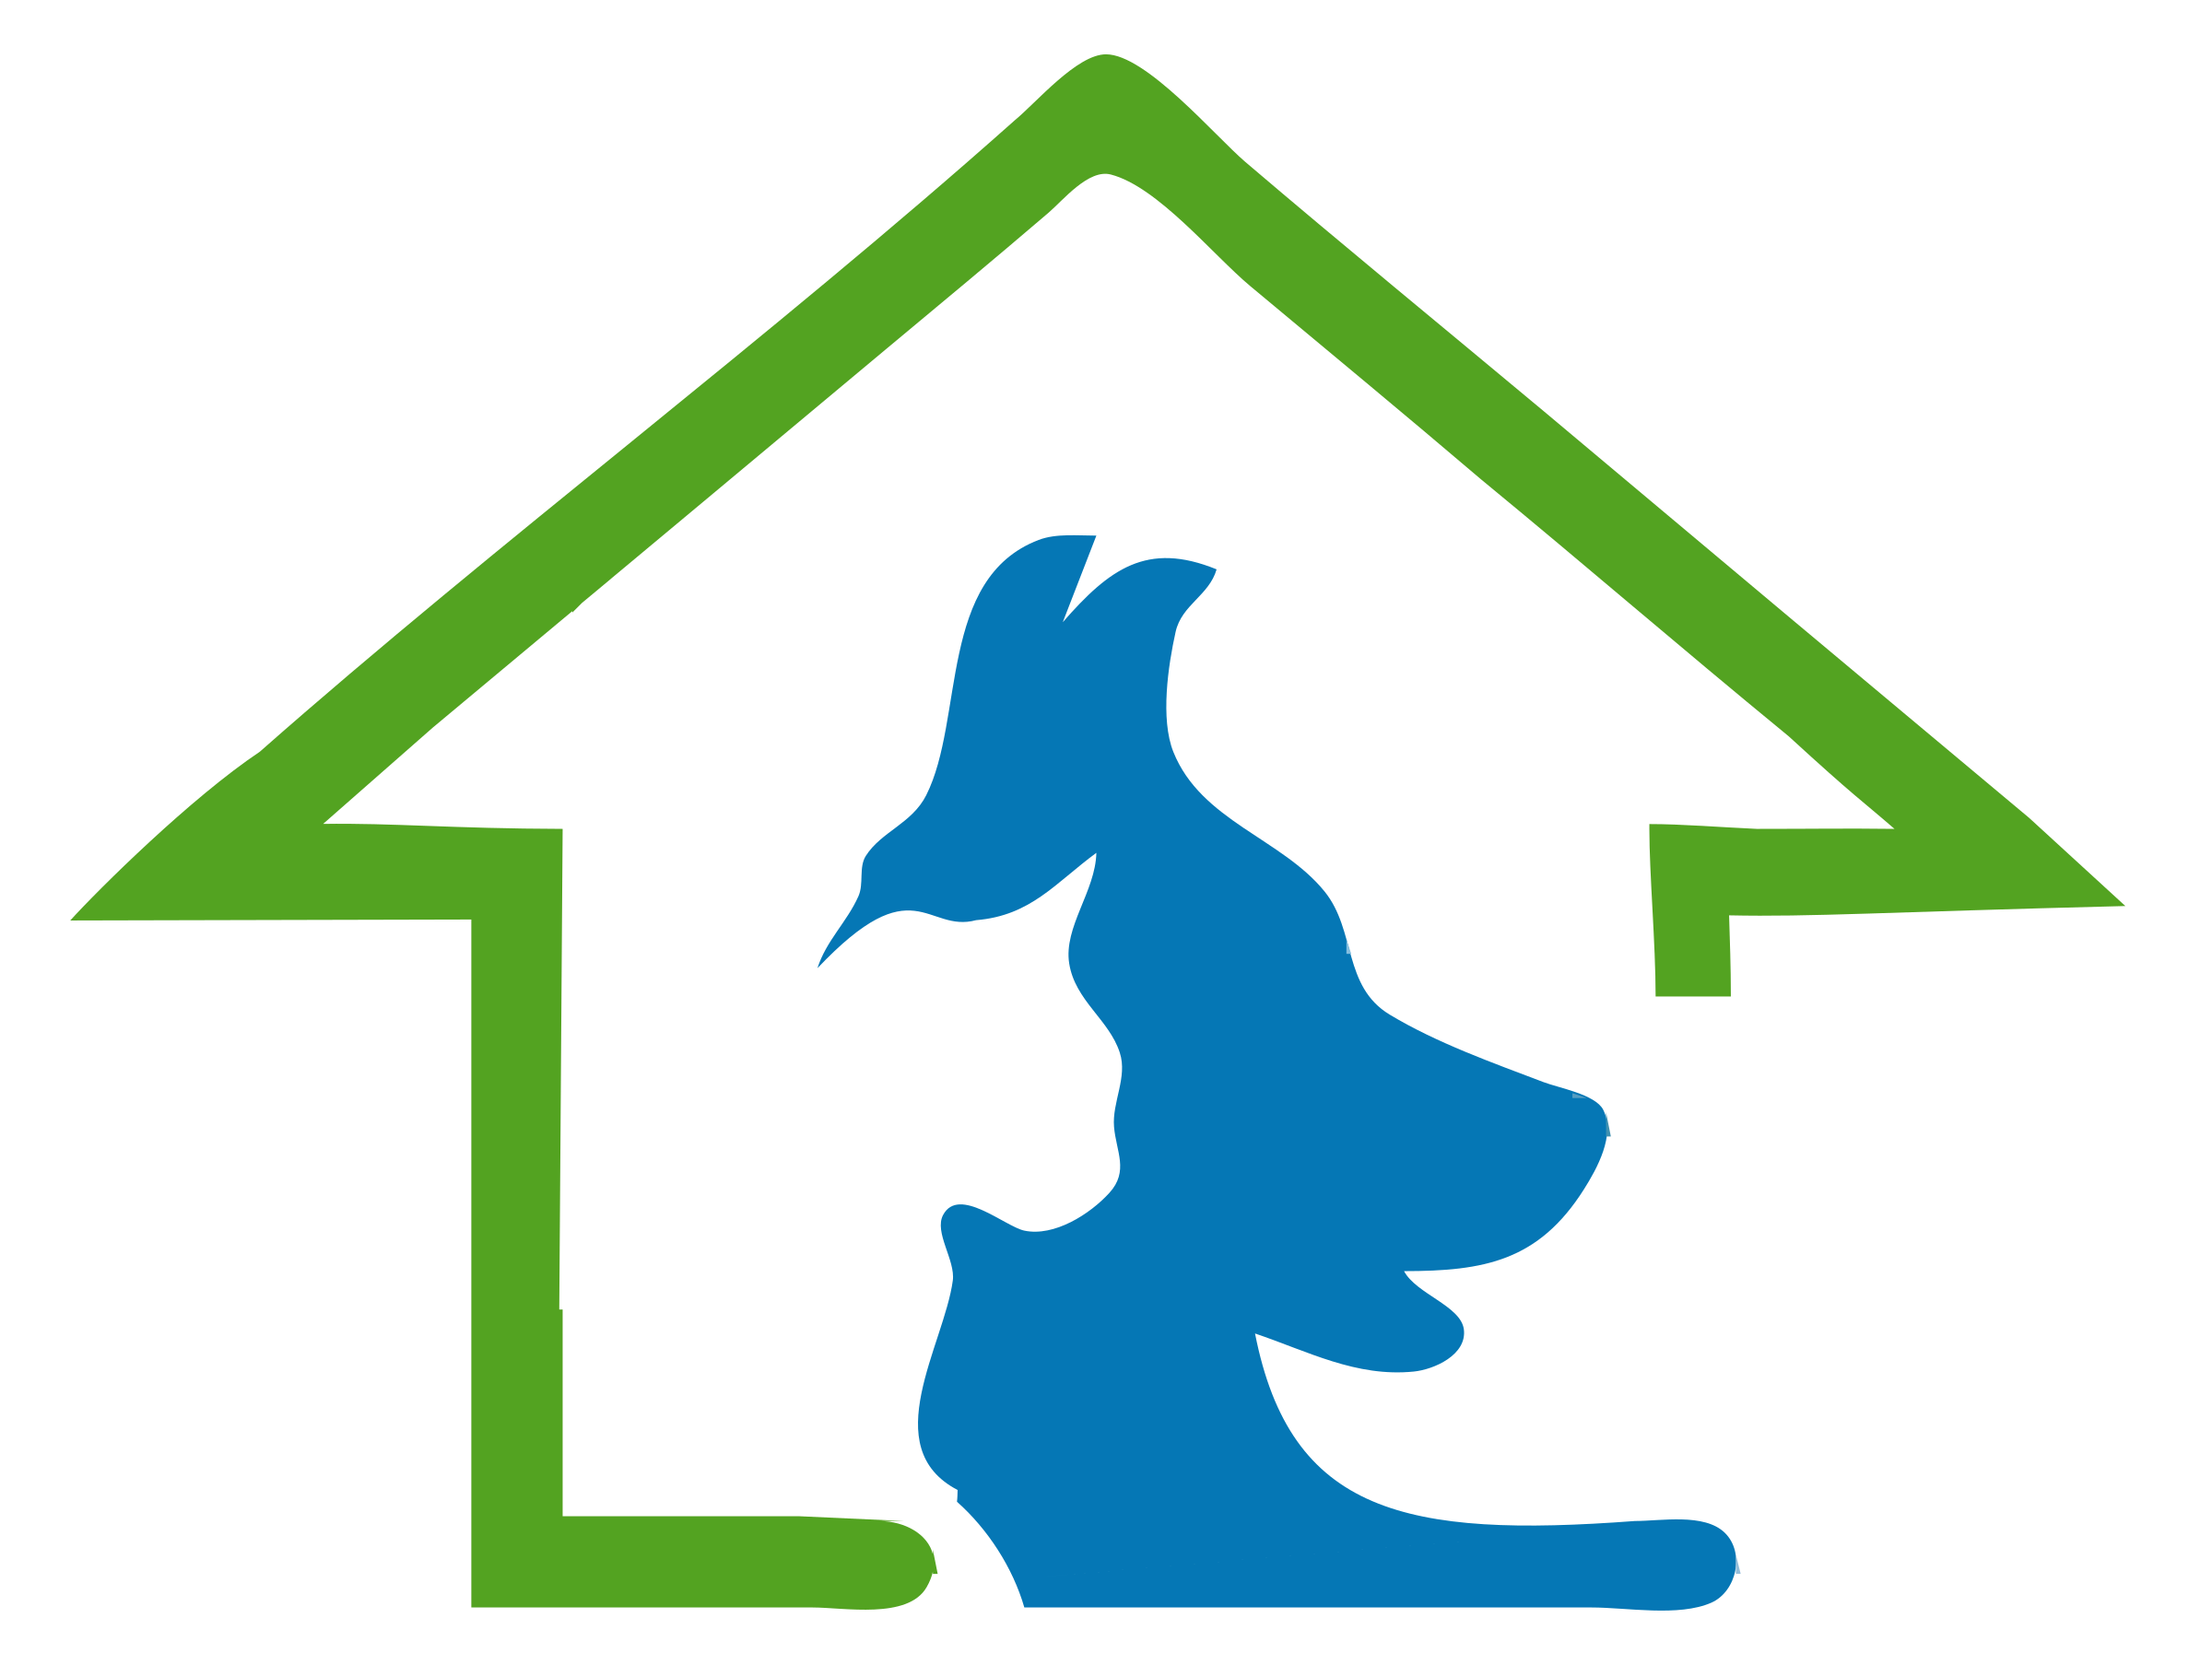 Pet clipart logo. Dog and cat house